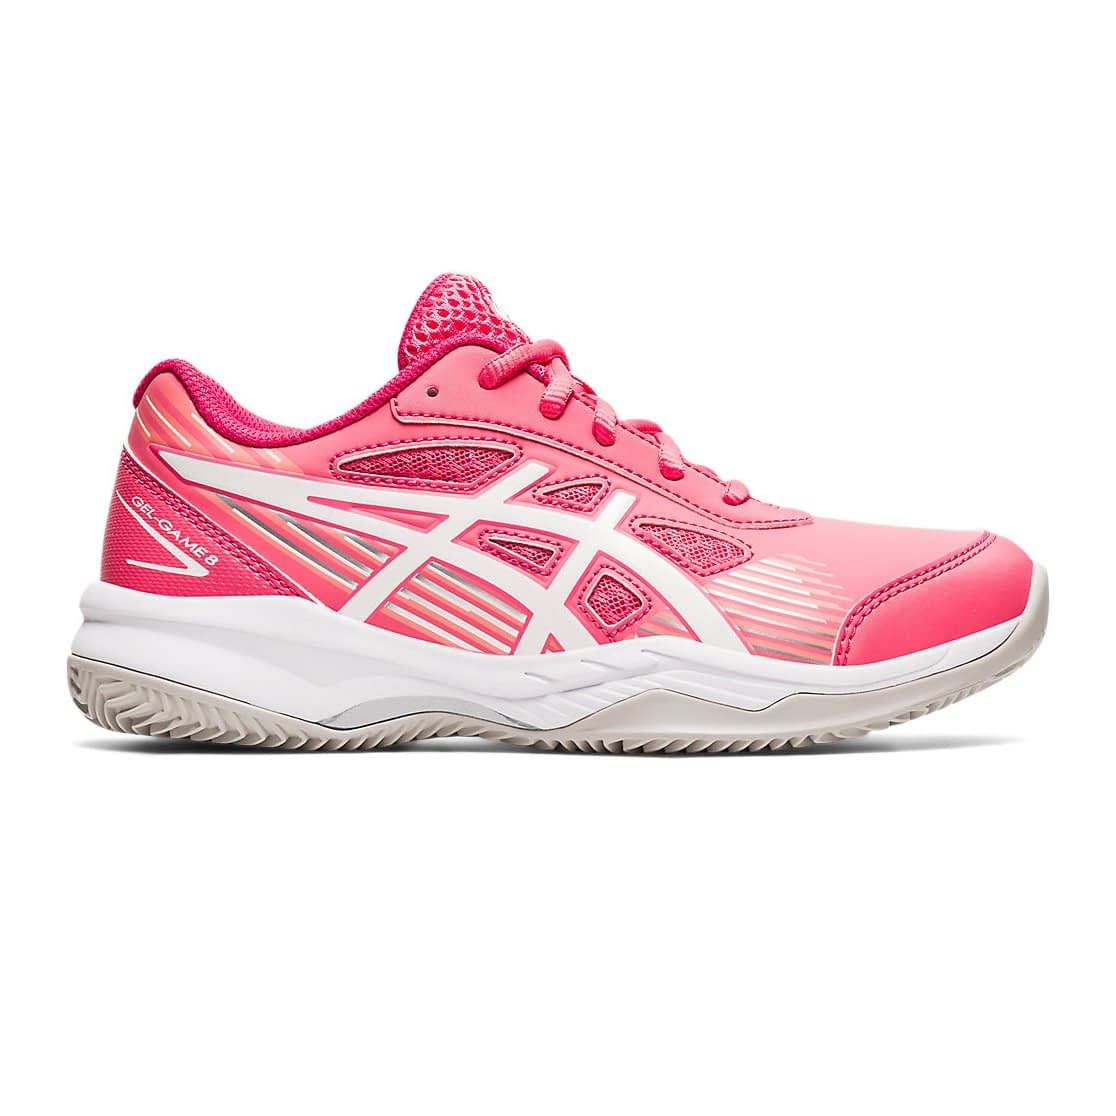 Asics Gel-Game 8 Roze 1044A024-700 side main